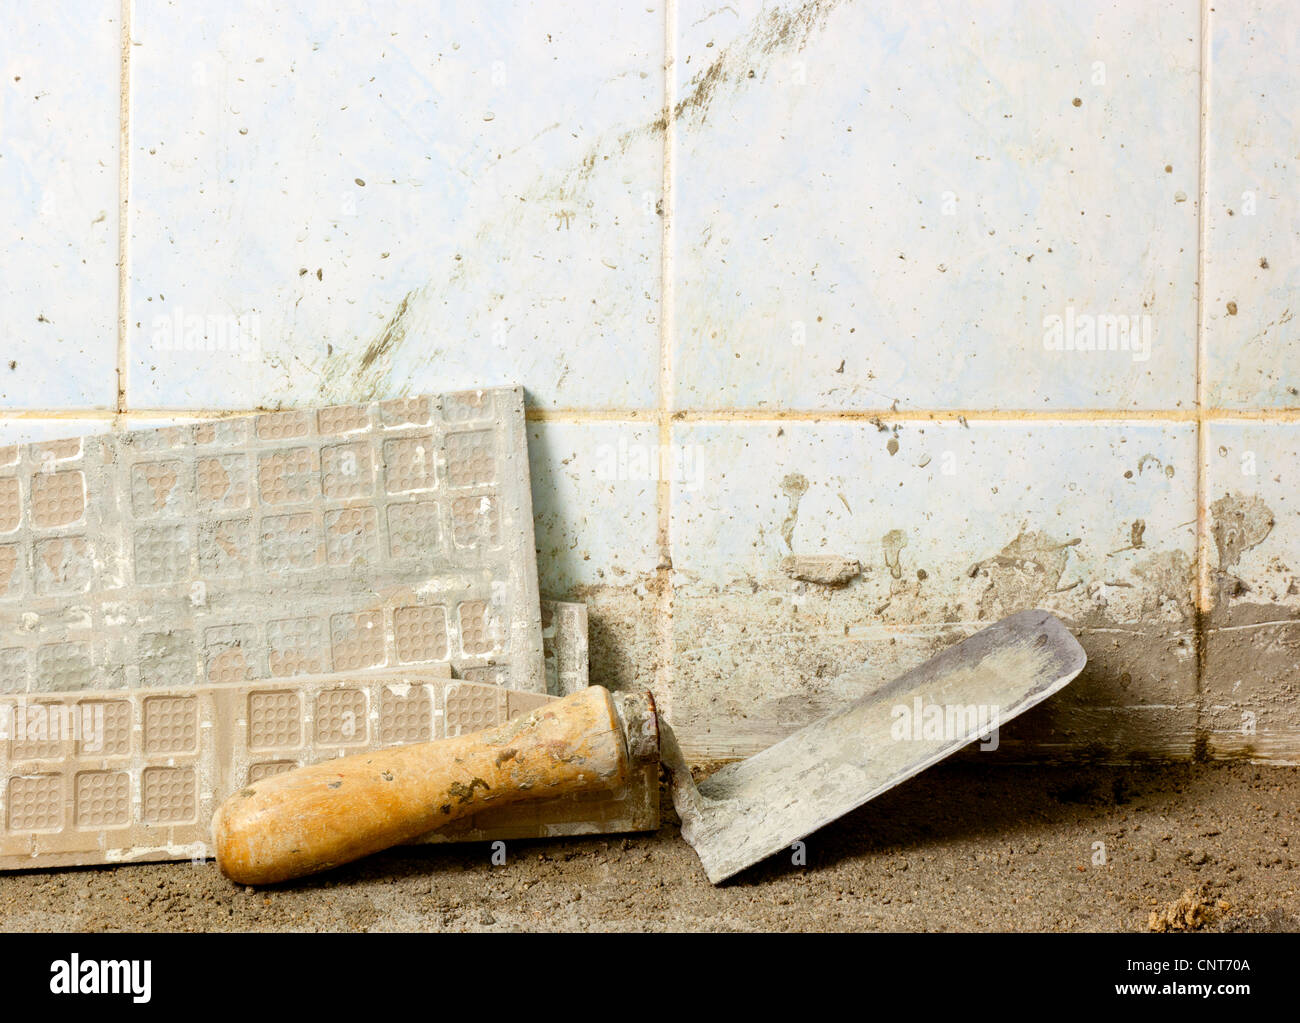 Section of a house renovation showing unfinished flooring - Stock Image